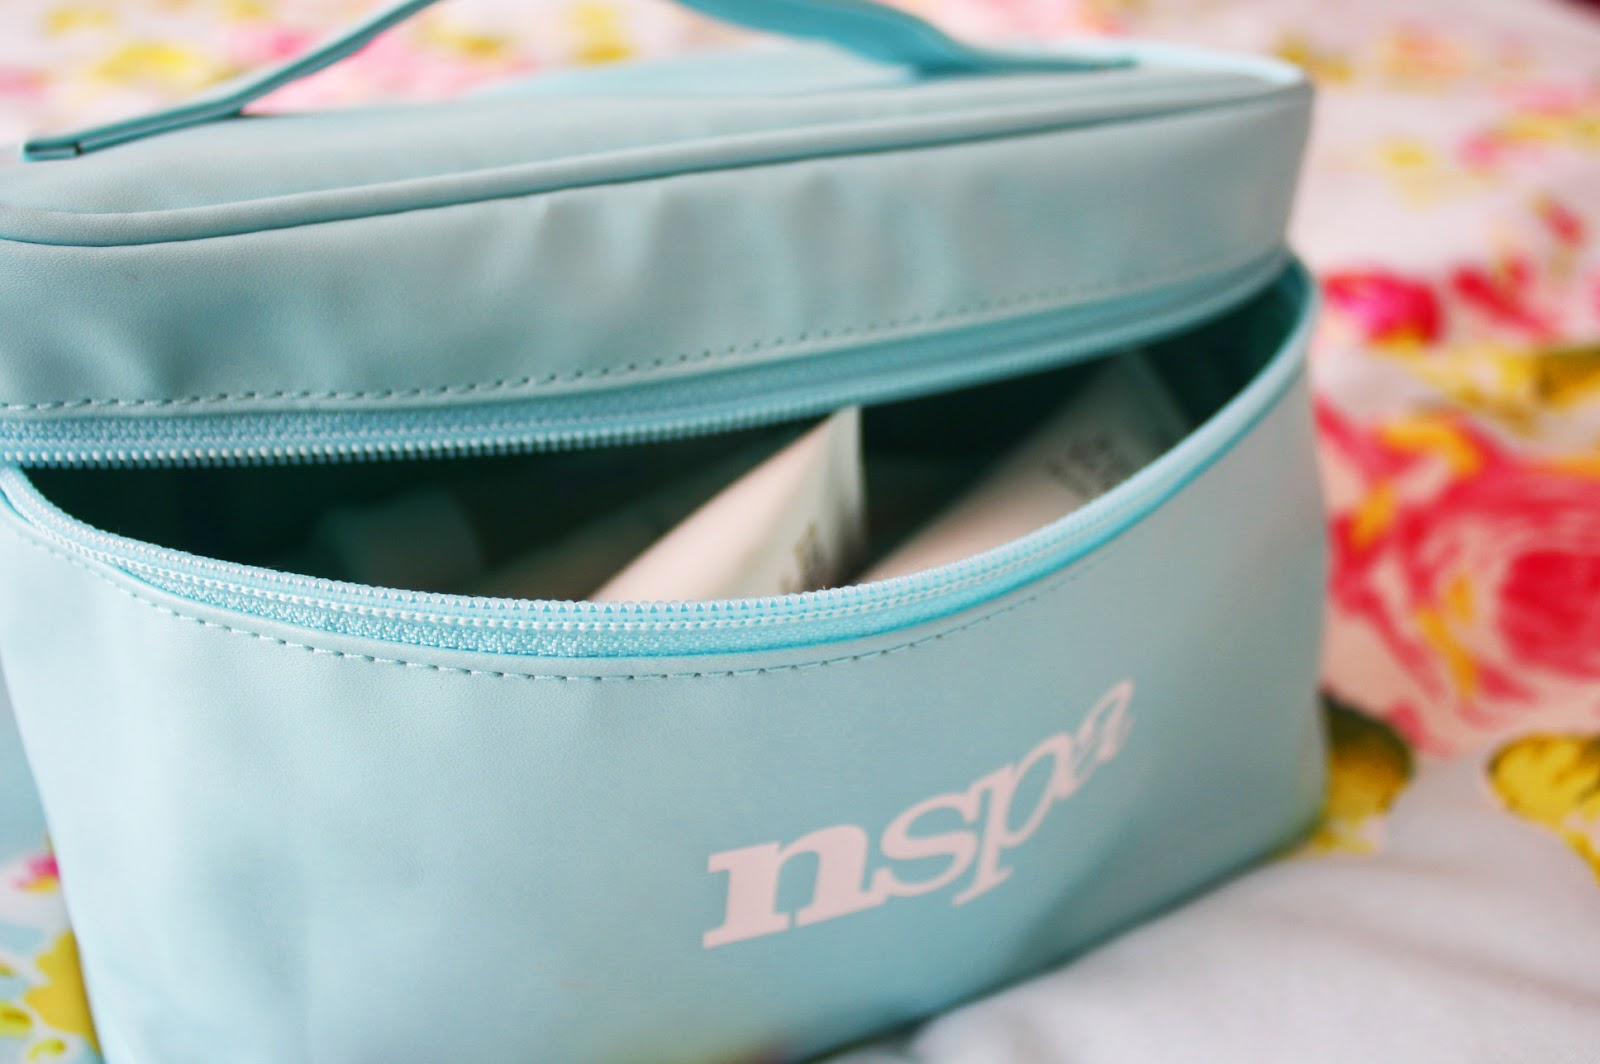 A goodie bag from NSPA featuring lots of beauty products